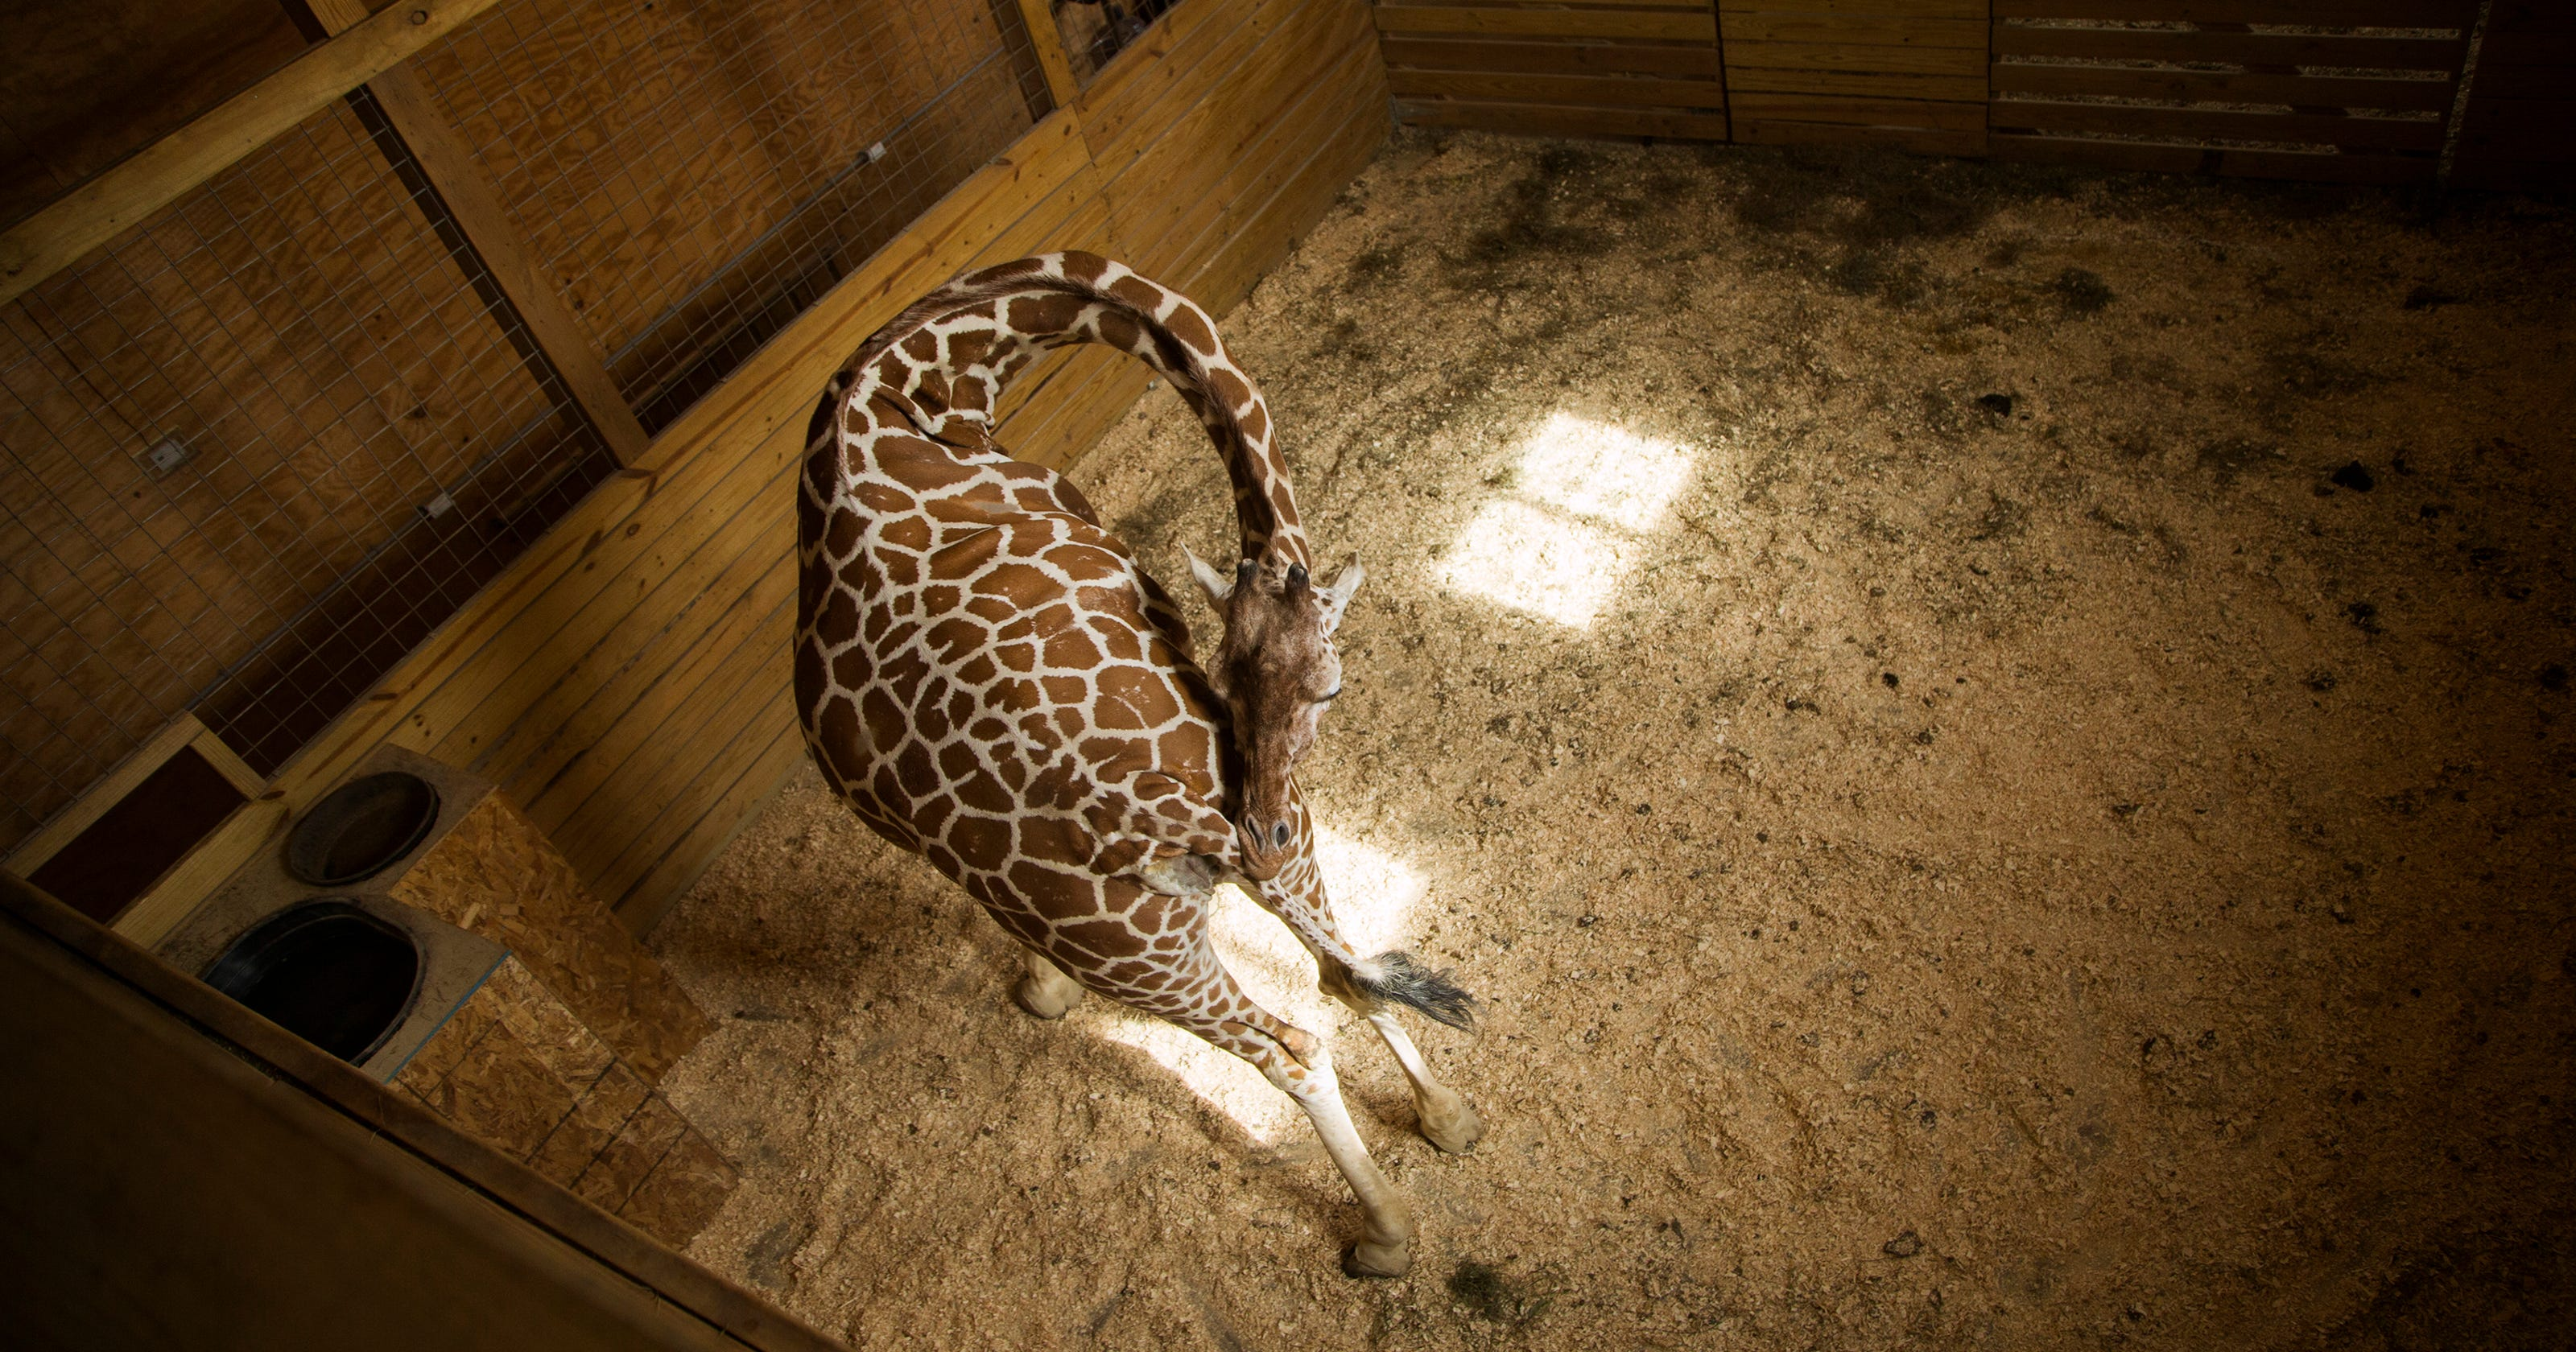 April the giraffe's pregnancy is advancing: When will she give birth?